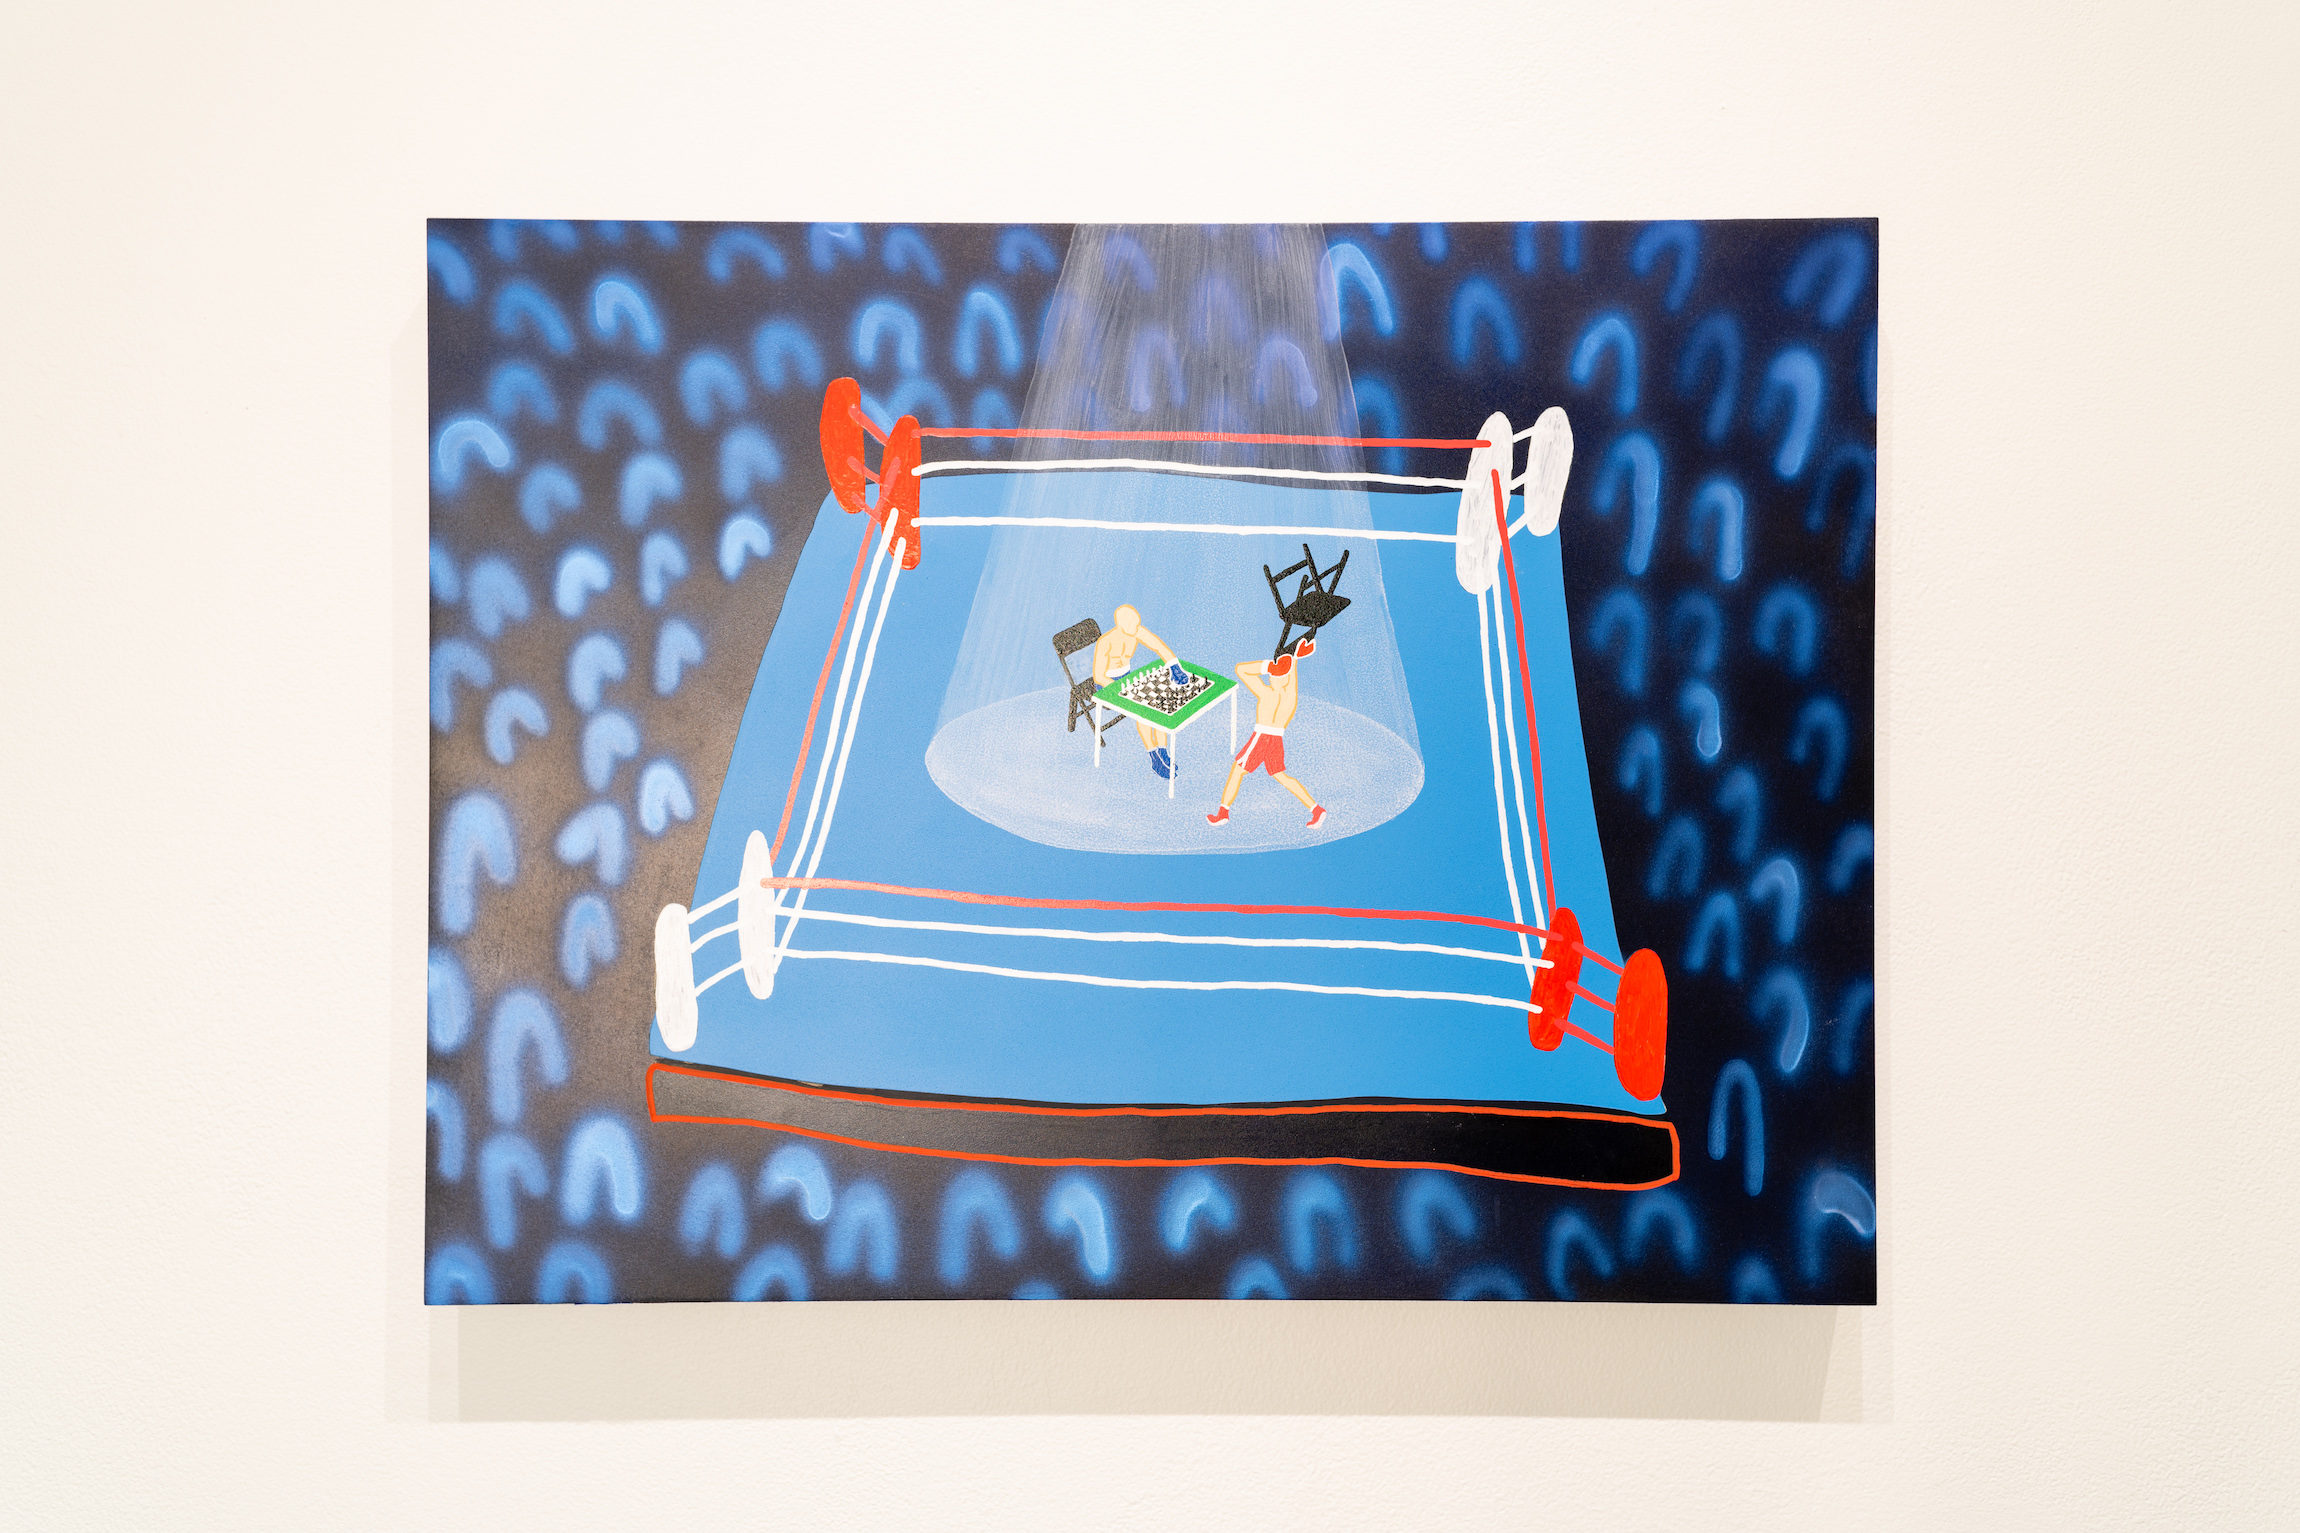 """The Mystery of Chessboxing,"" painting from James Pederson's Master of Fine Arts exhibition Rules of Engagement at the Gallery 7 of the Humanities Building, University of Wisconsin-Madison. Photography by Kyle Herrera."